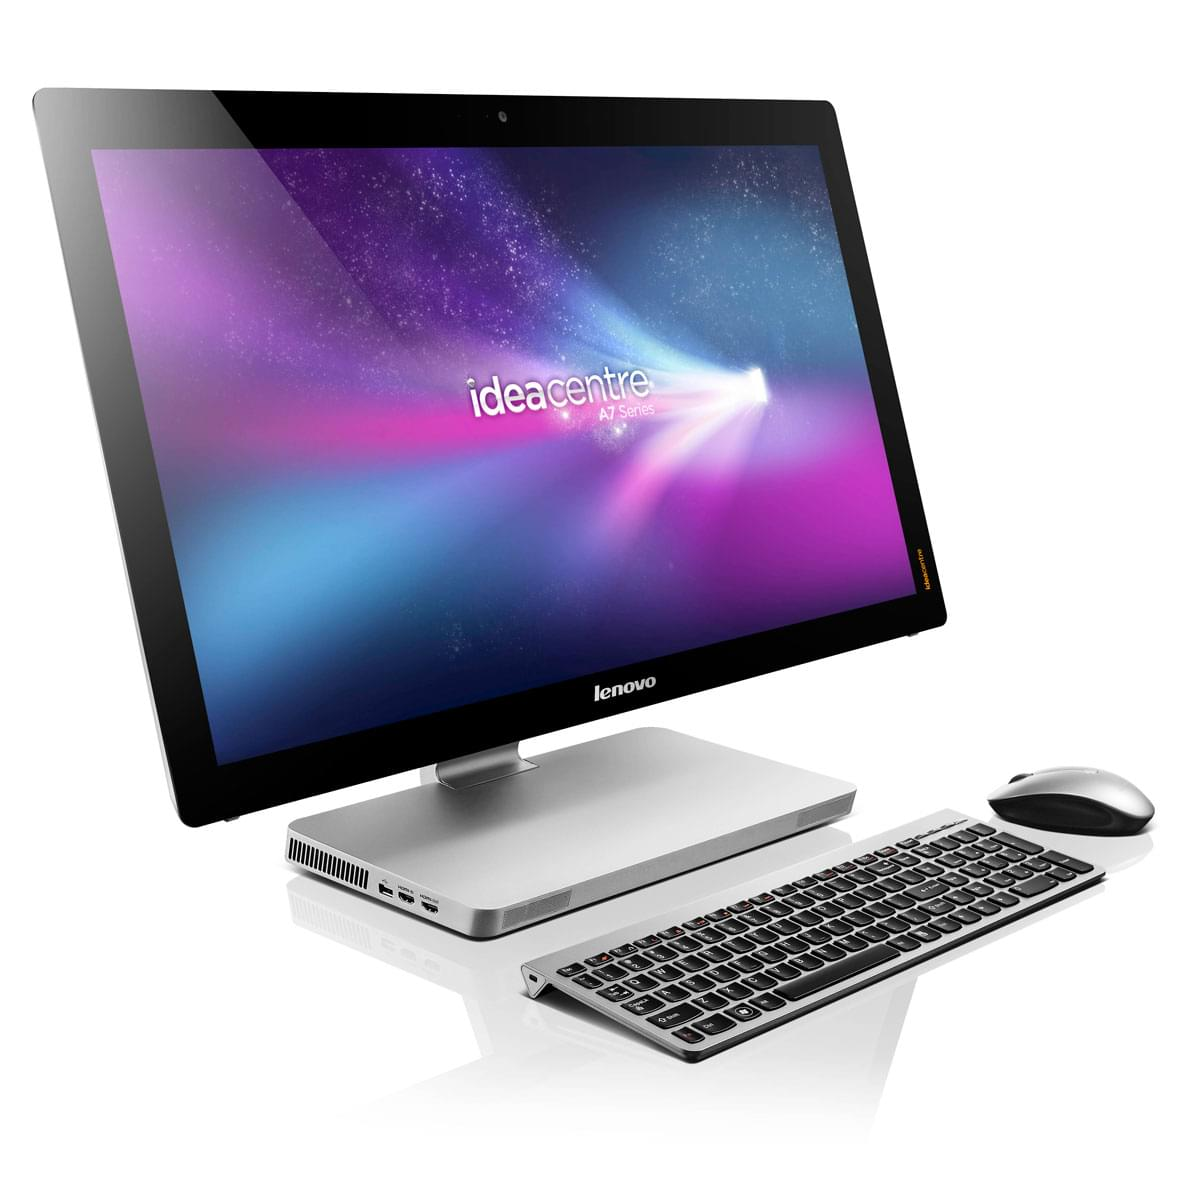 Lenovo A720 2564 - All-In-One PC Lenovo - Cybertek.fr - 0